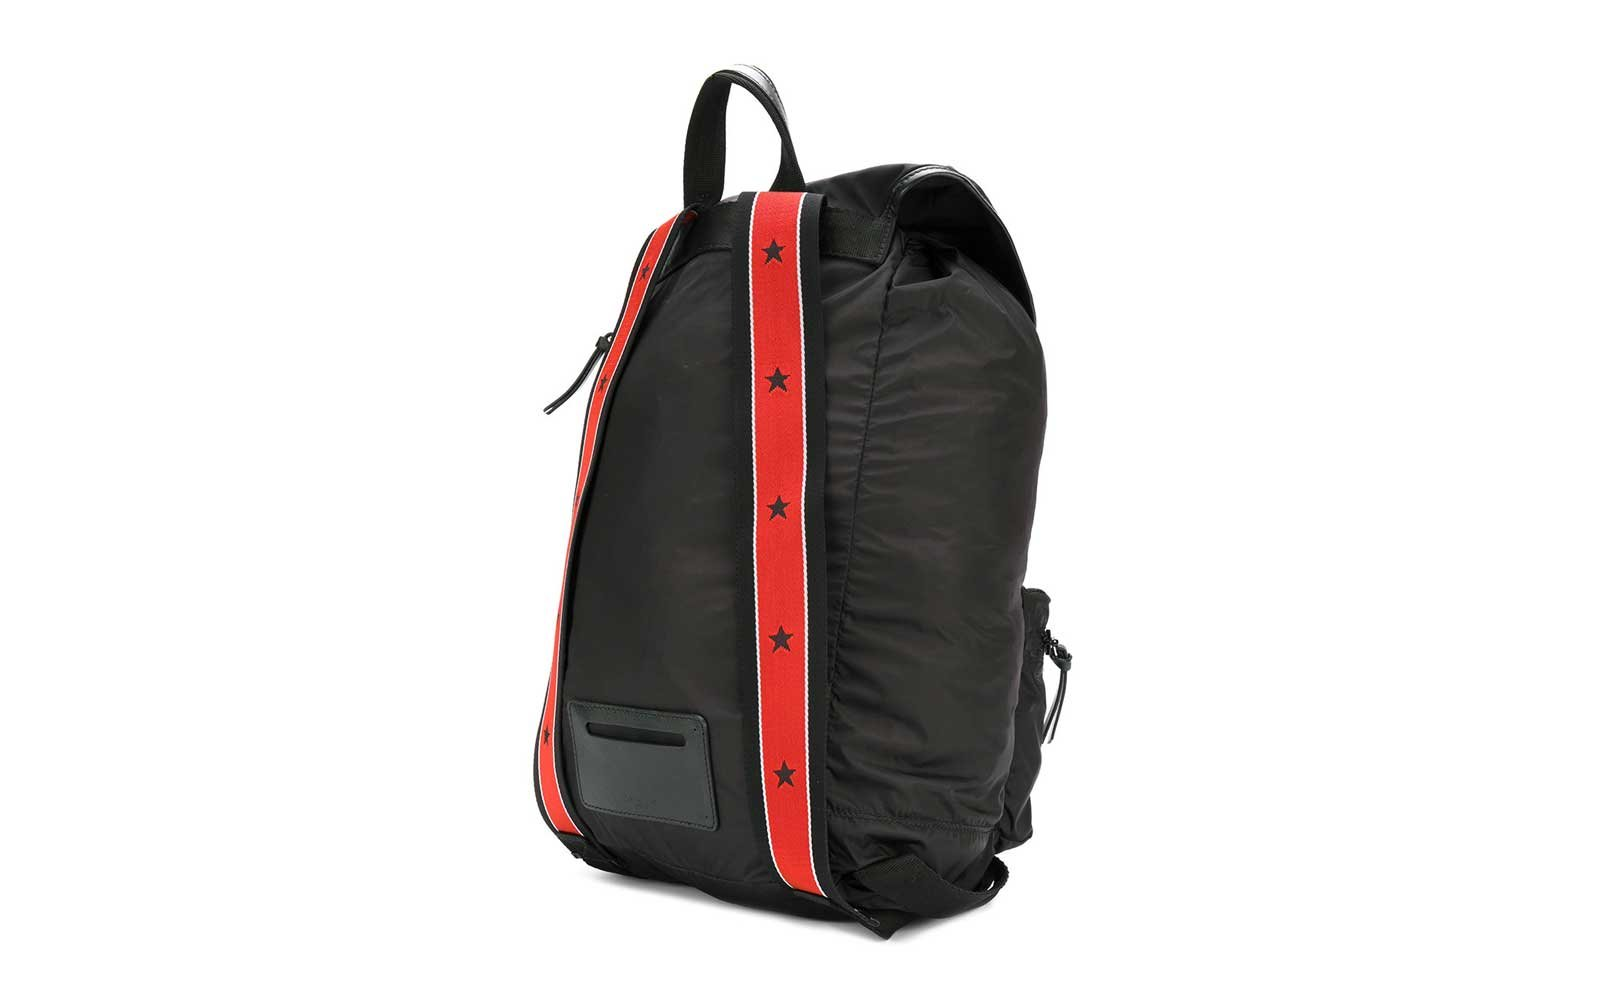 givenchy packable backpack